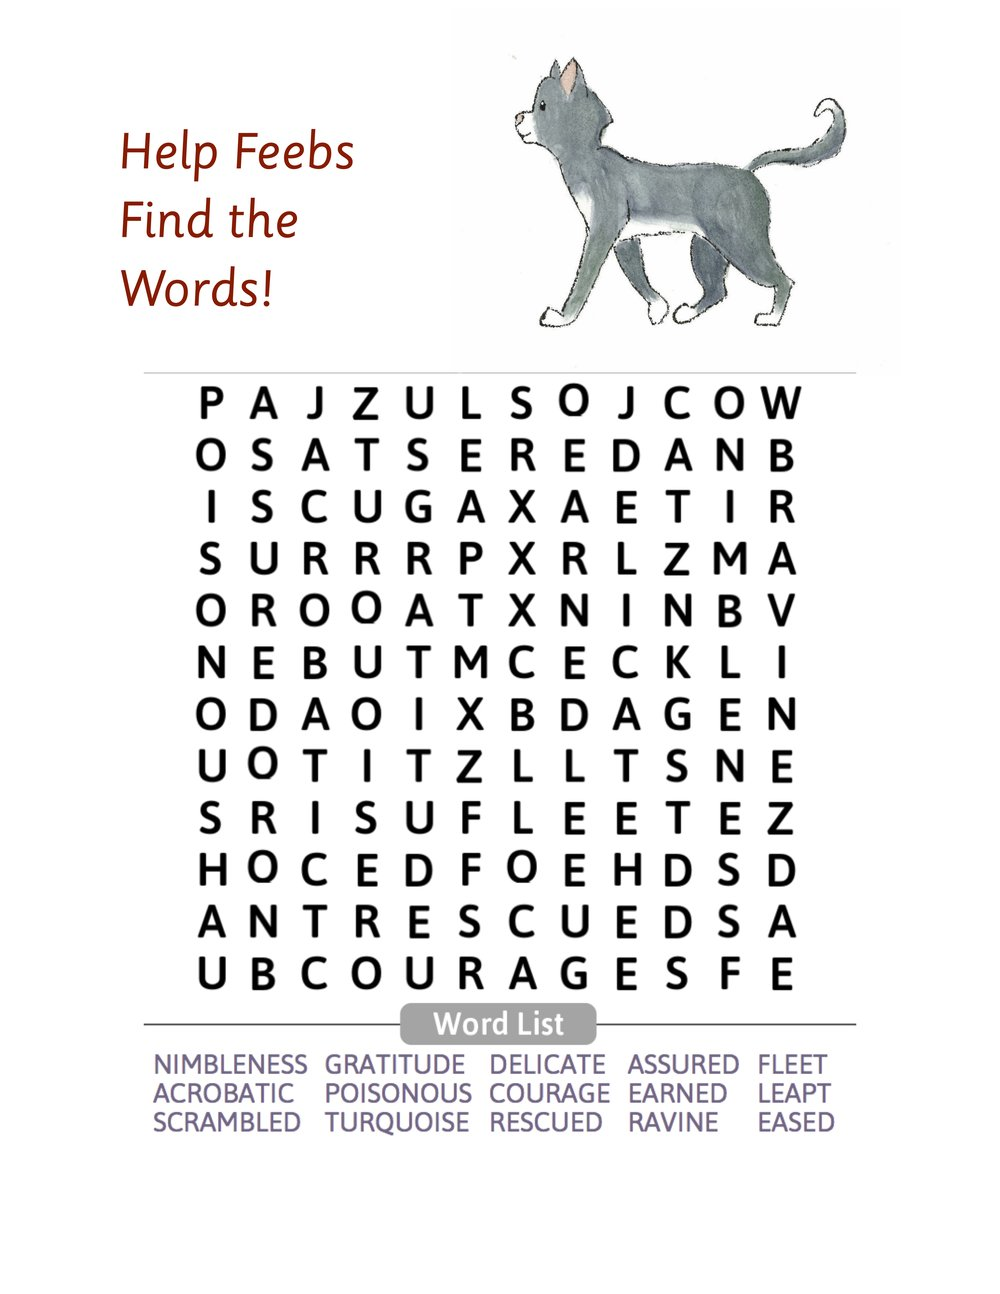 Help Feebs Find the Words .jpg